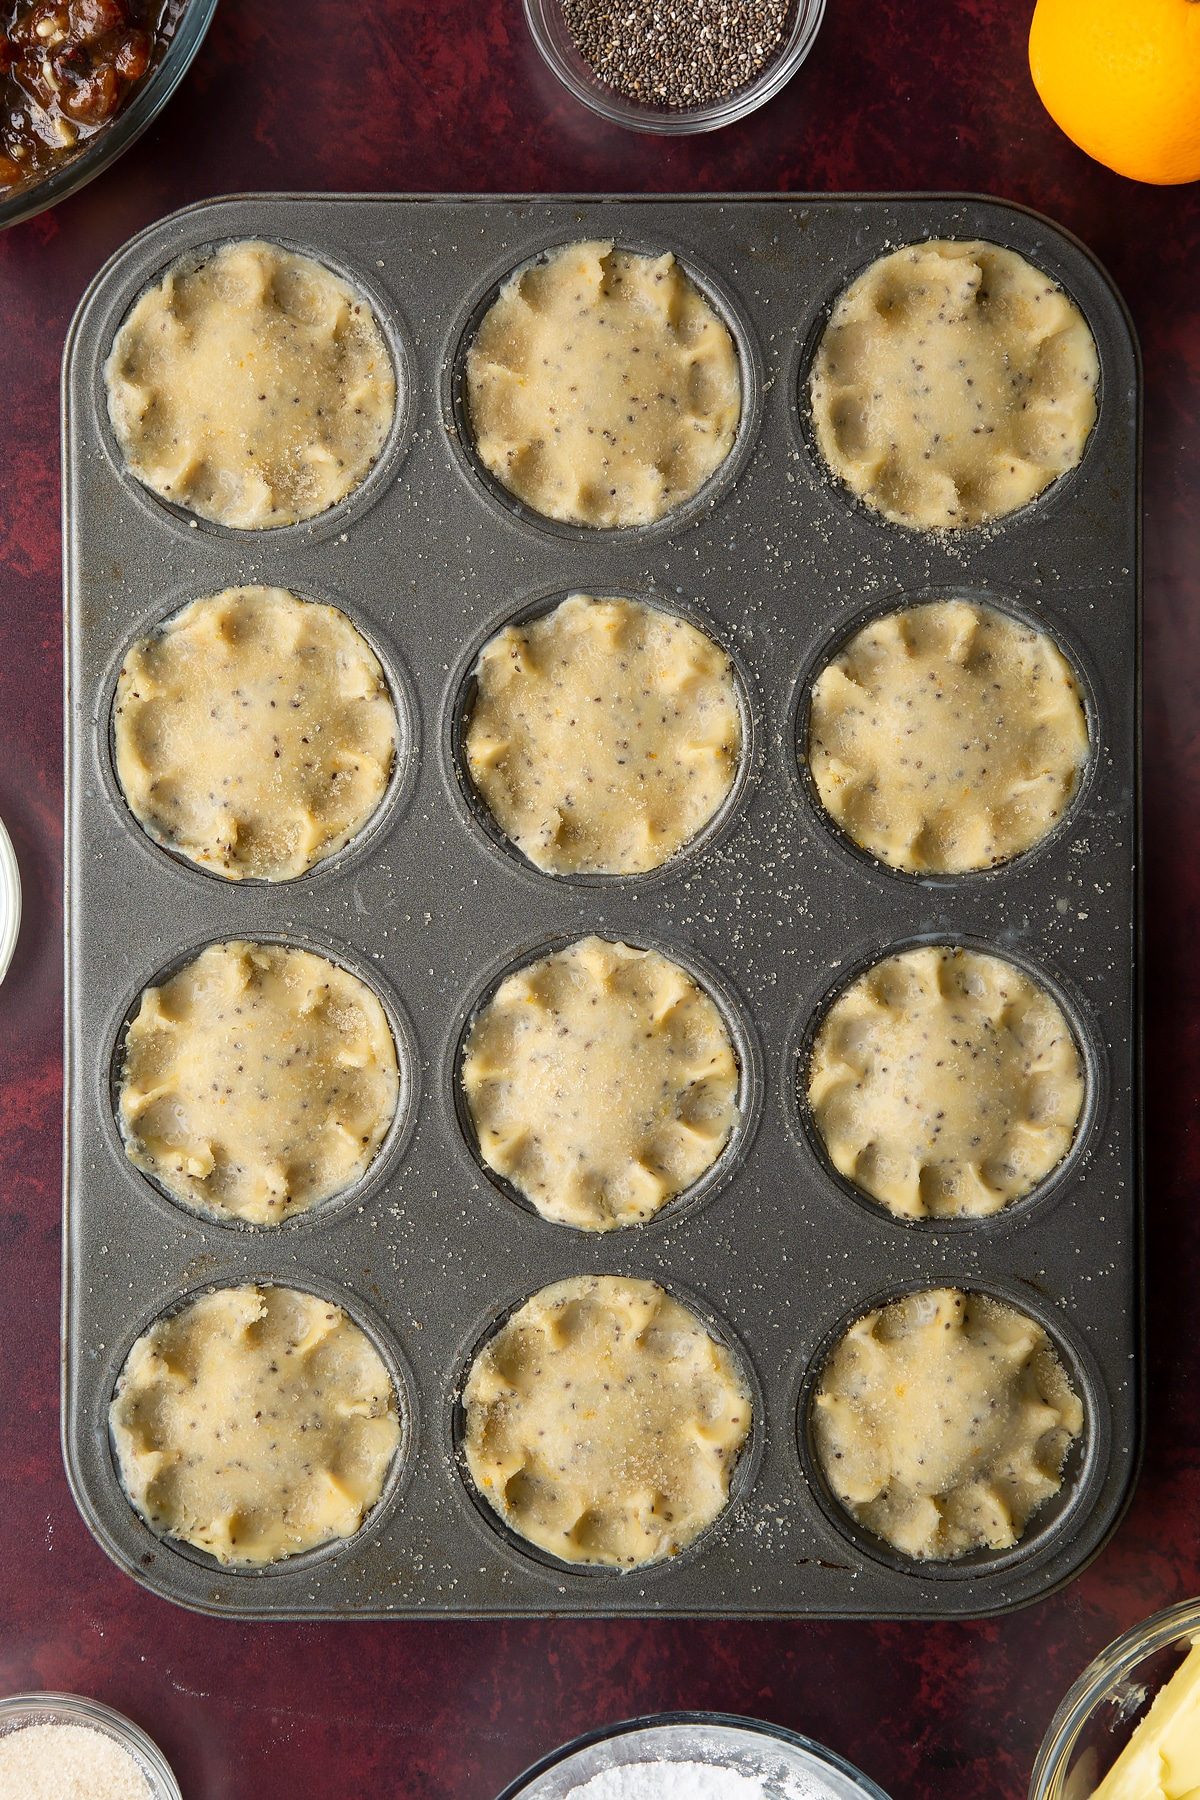 Uncooked vegan mince pies, brushed with milk and sprinkled with sugar in a 12-hole muffin tray.